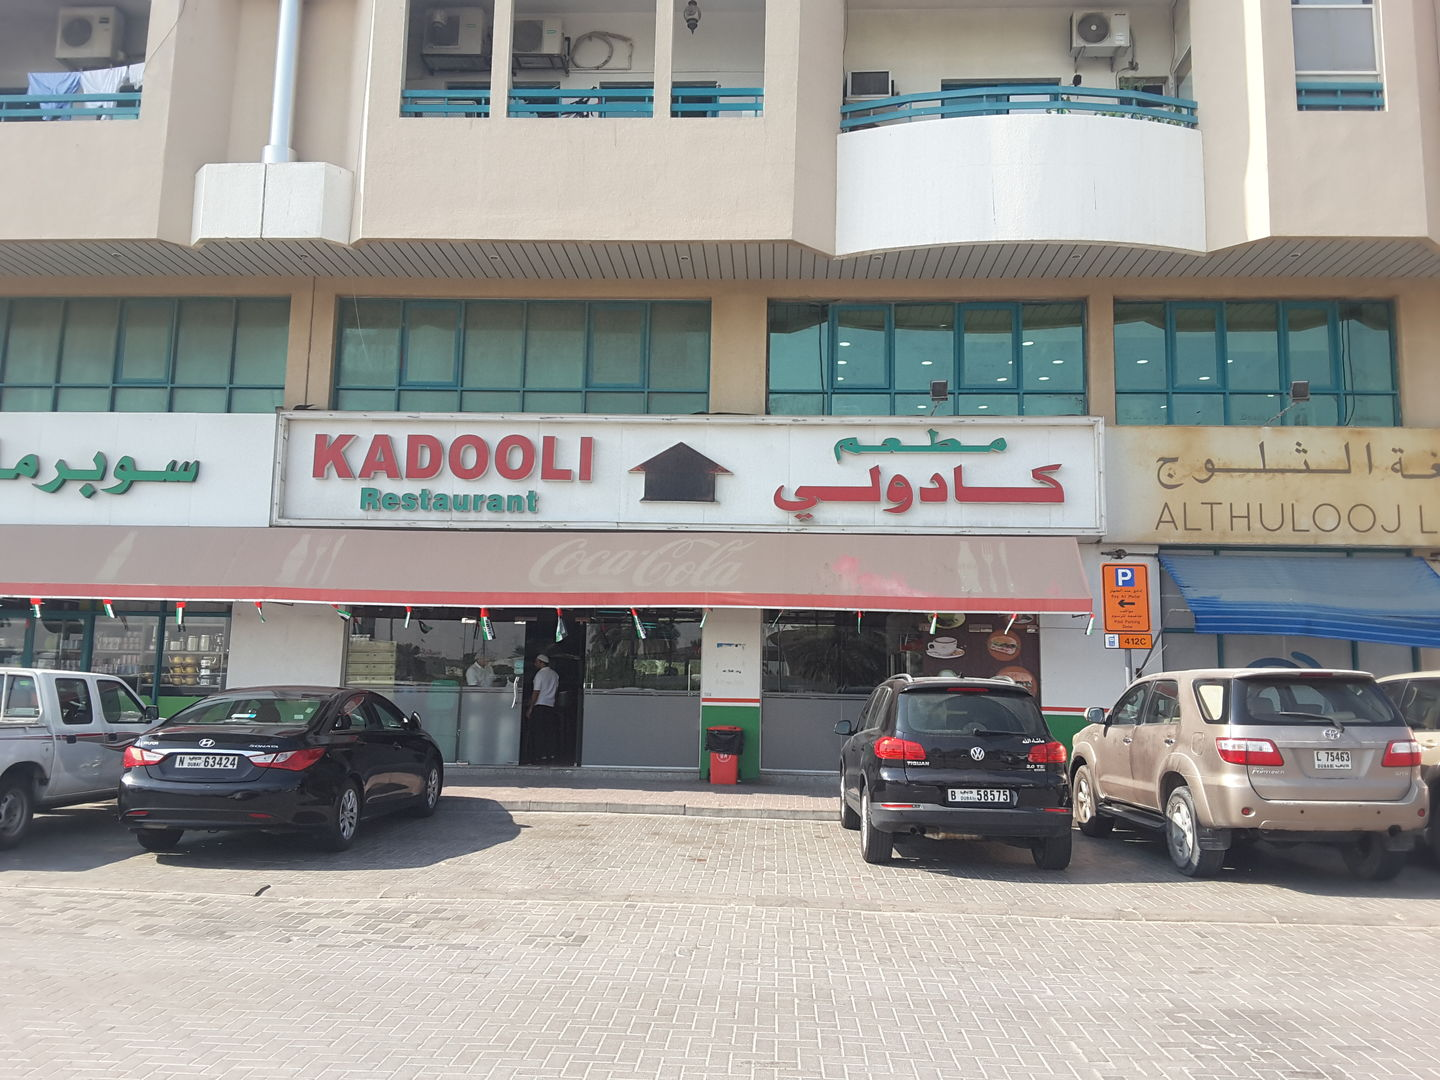 HiDubai-business-kadooli-restaurant-food-beverage-restaurants-bars-dubai-festival-city-second-al-kheeran-dubai-2